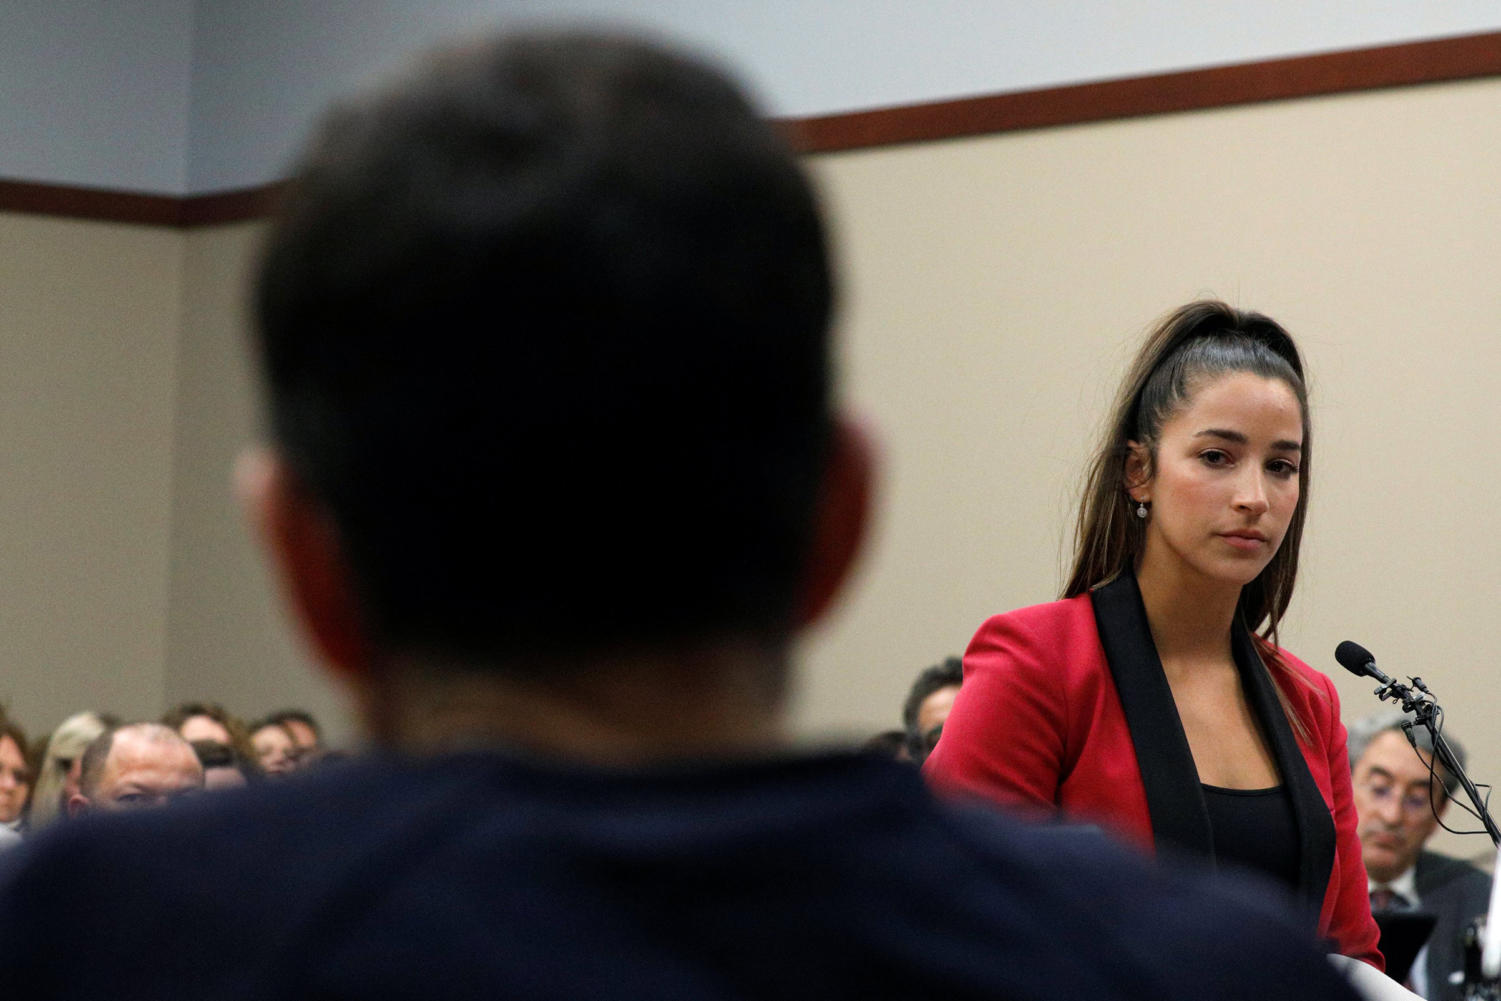 Victim and former gymnast Aly Raisman speaks at the sentencing hearing for Larry Nassar, (R) a former team USA Gymnastics doctor who pleaded guilty in November 2017 to sexual assault charges, in Lansing, Michigan, U.S., January 19, 2018. REUTERS/Brendan McDermid